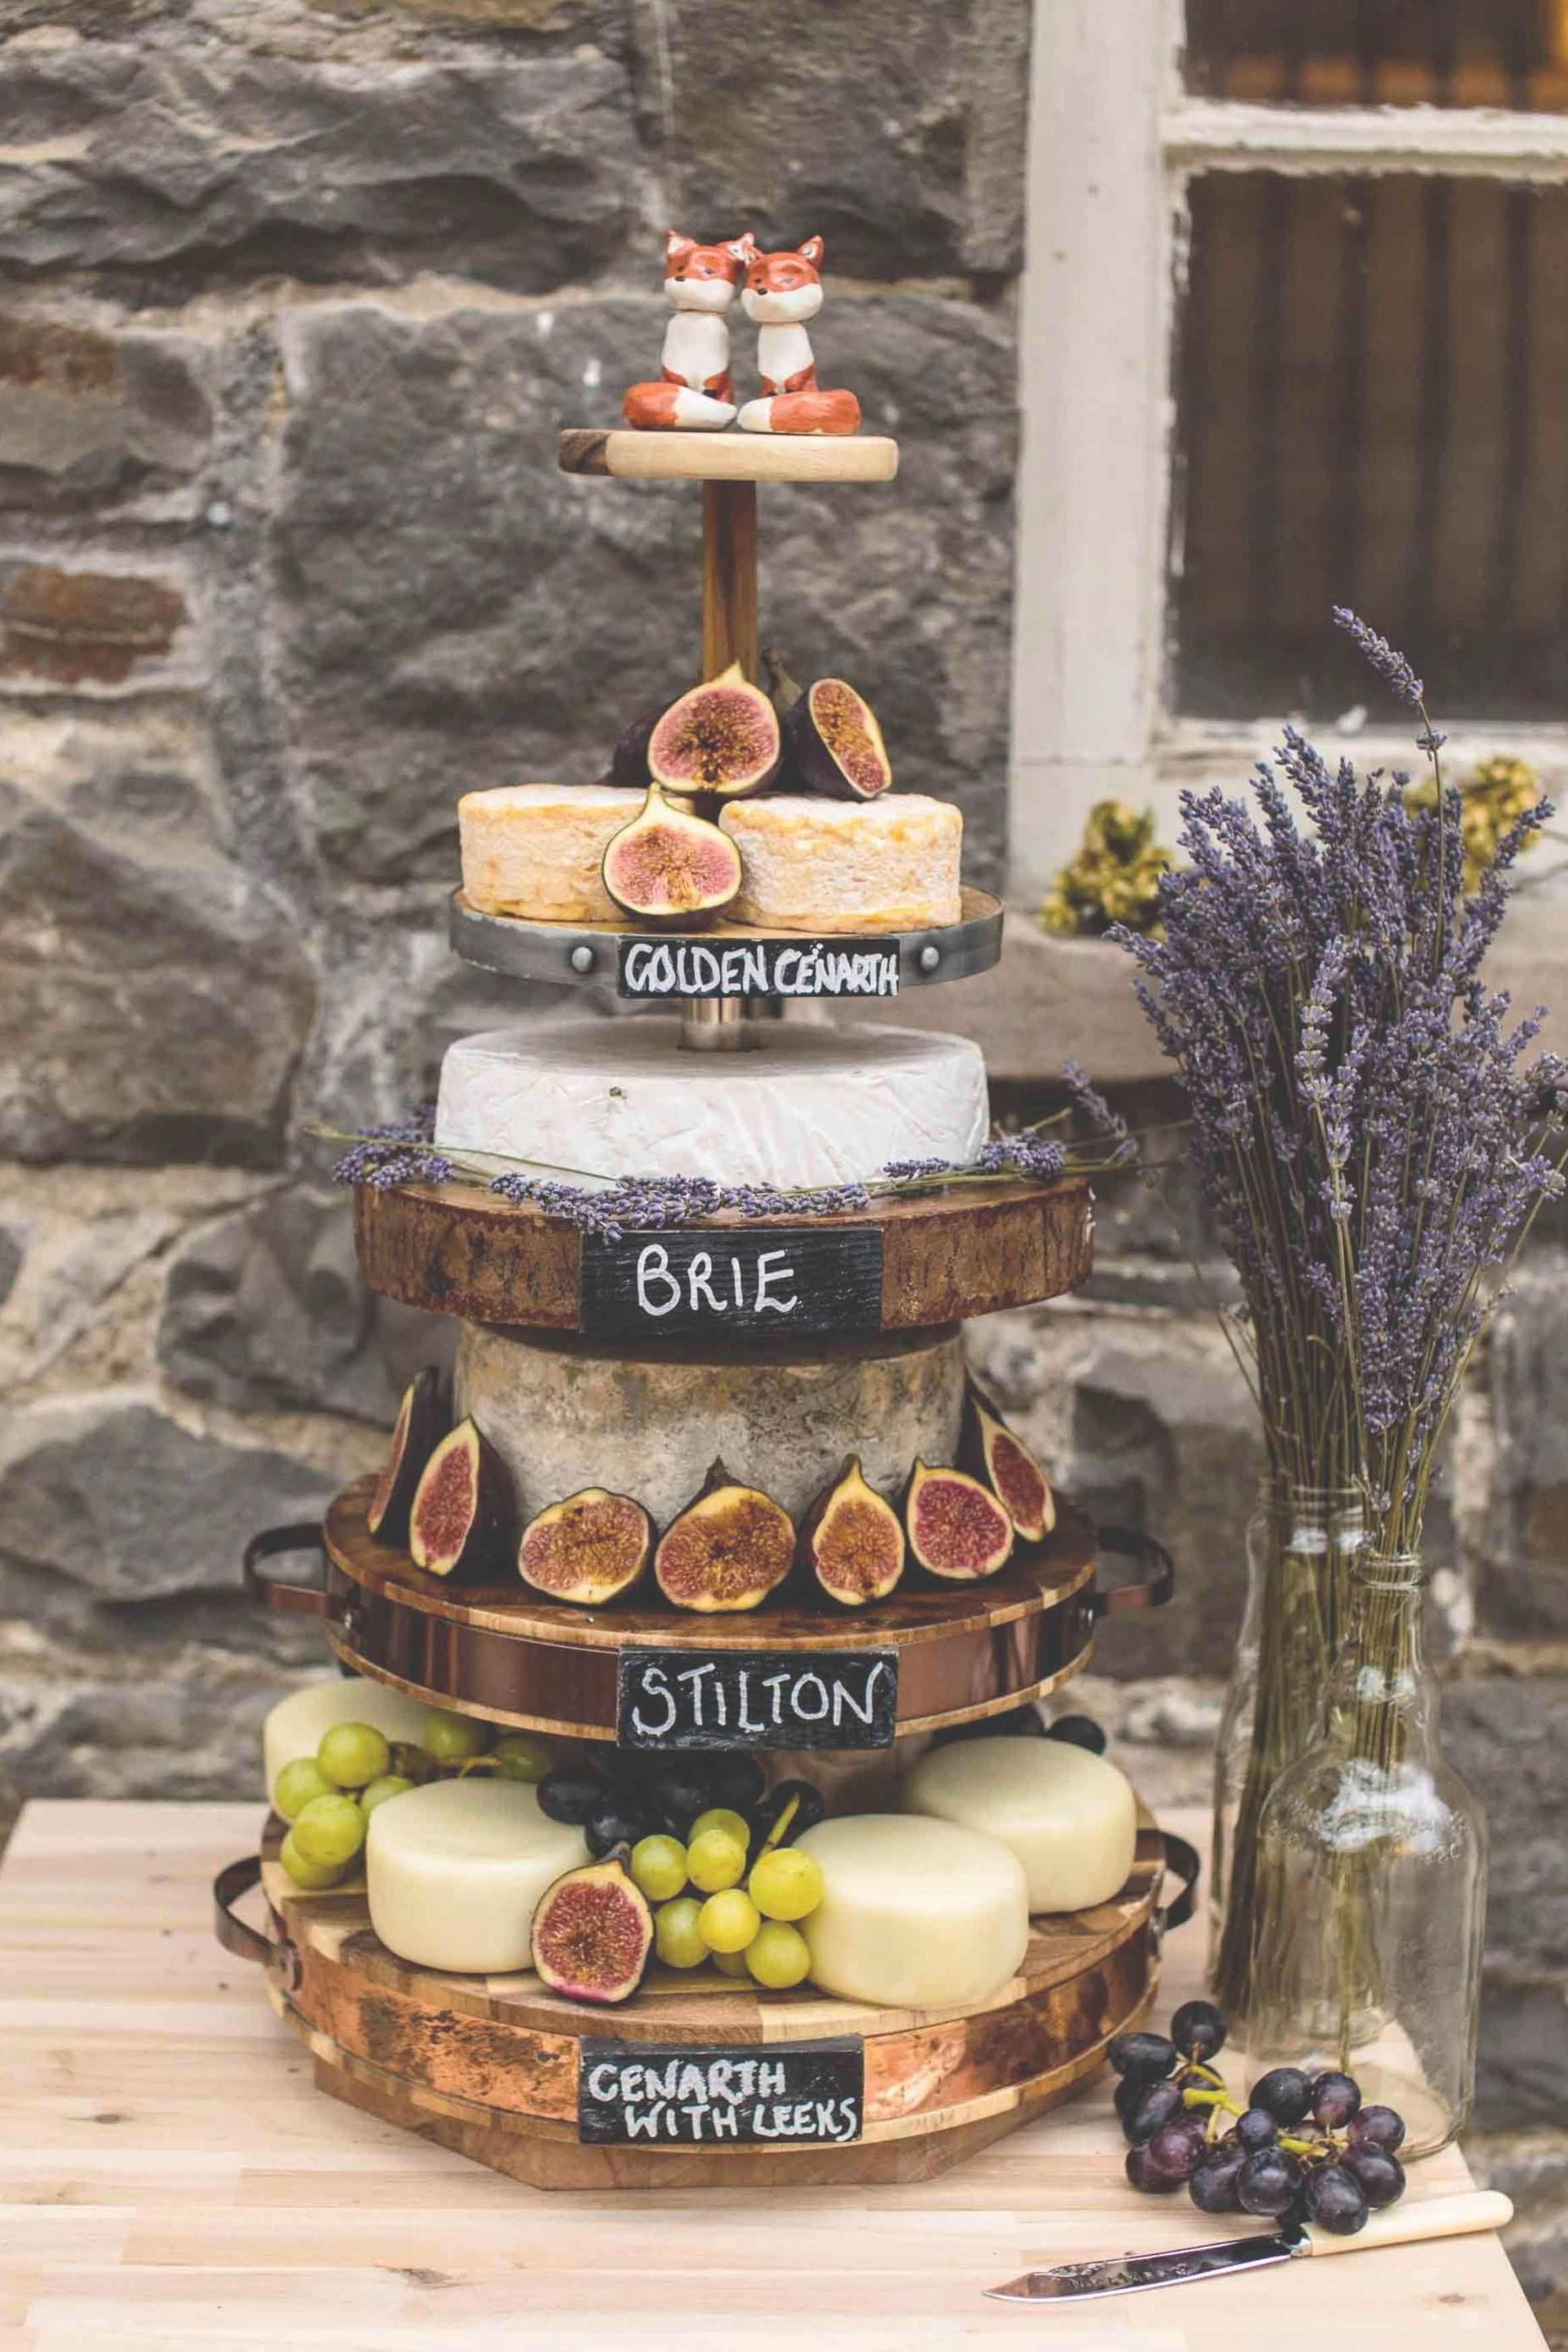 An Early Chat With The Cake Baker To Talk Over The Design And Flavour Is A Smart Move And Should Cheese Wedding Cake Cheesecake Wedding Cake Wedding Cheesecake